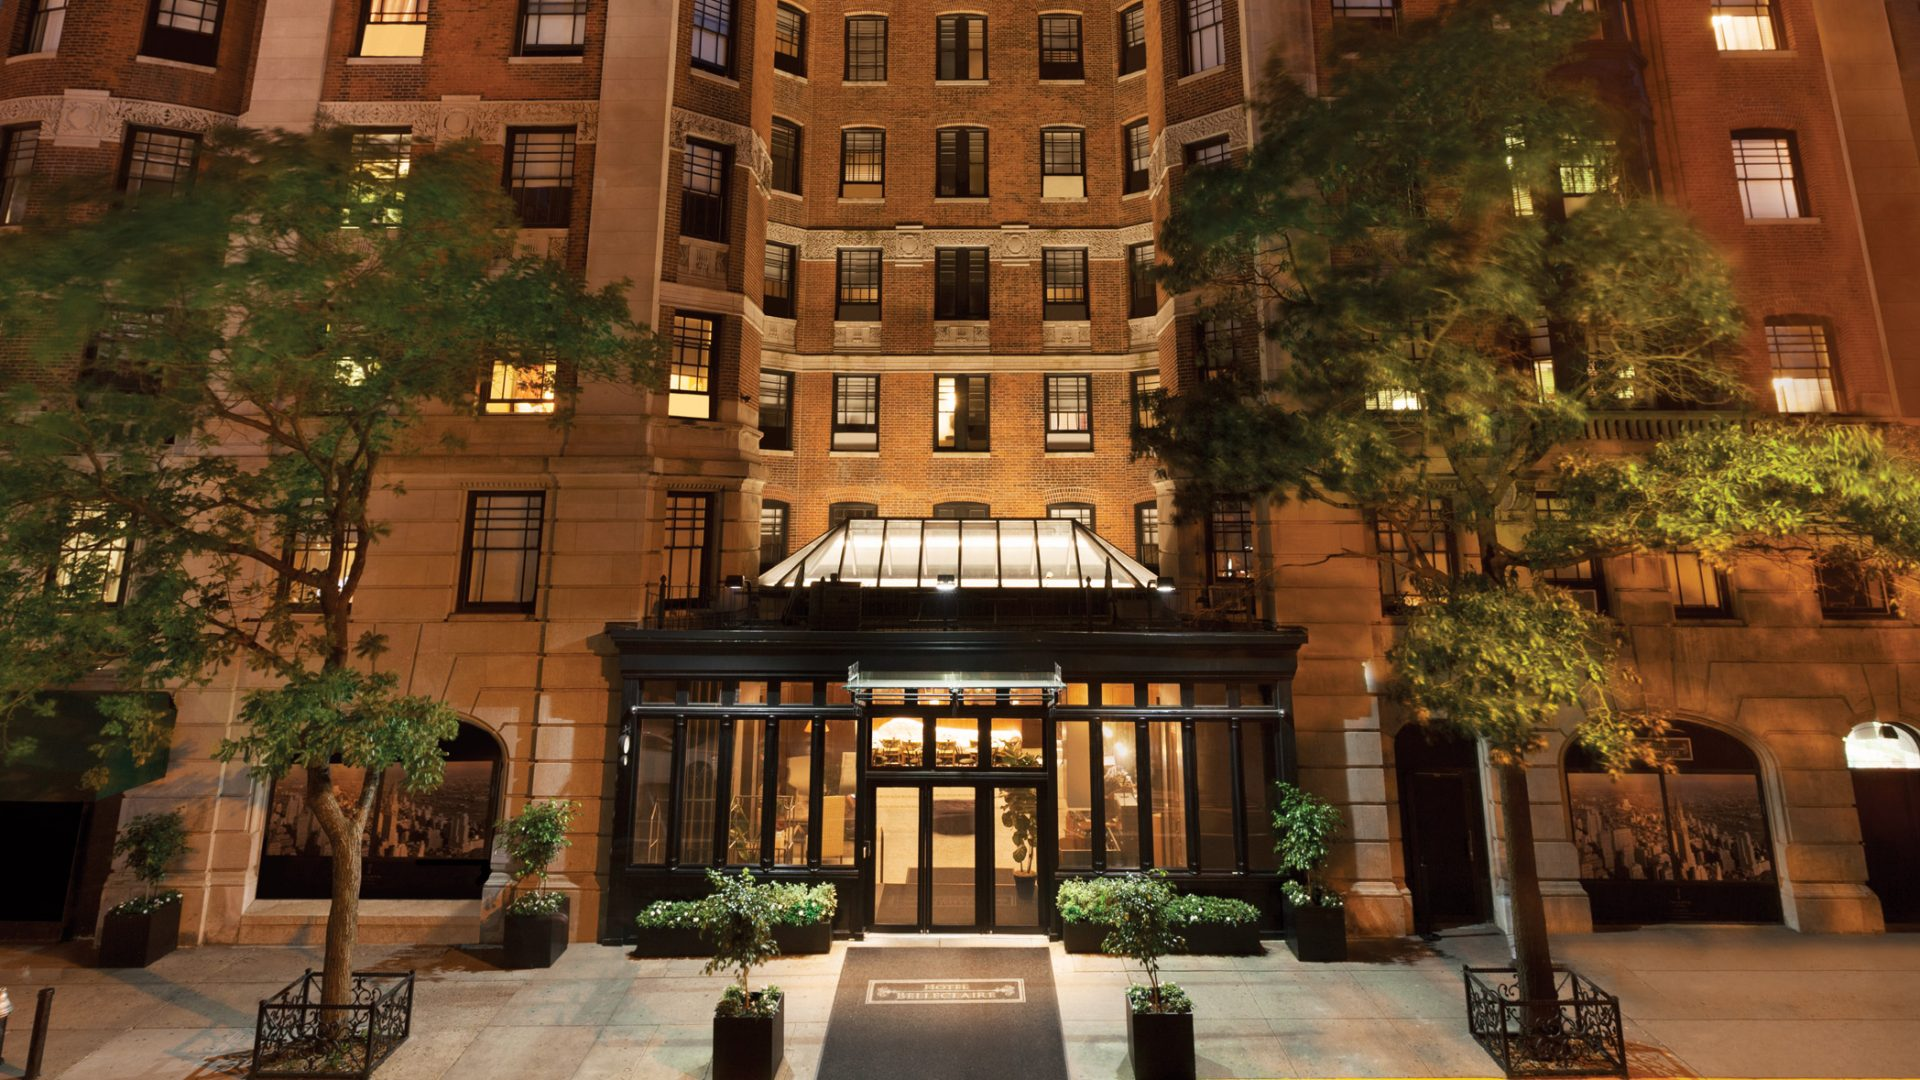 Upper west side hotels hotel belleclaire in new york for Best boutique hotels nyc 2016